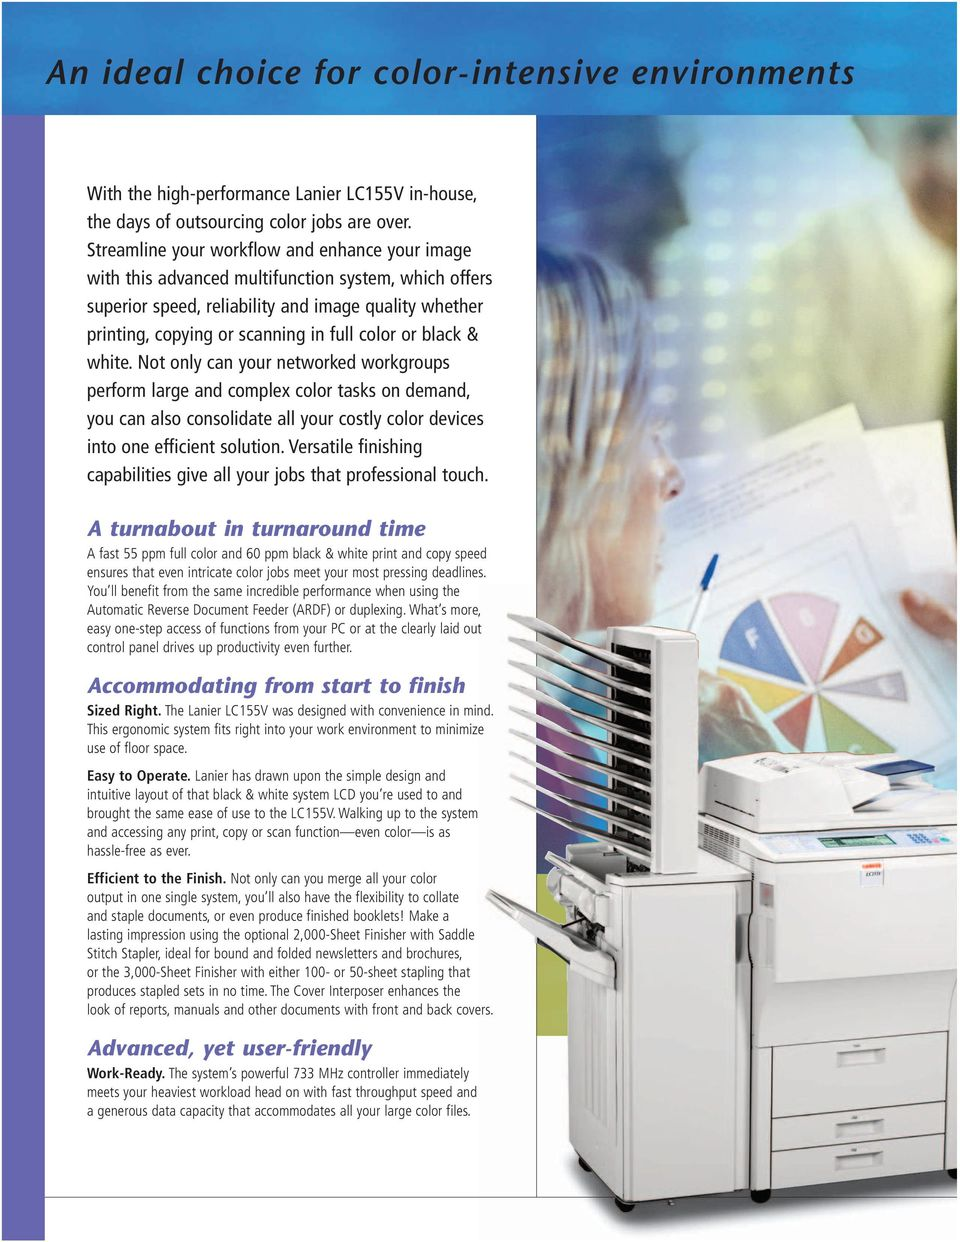 or black & white. Not only can your networked workgroups perform large and complex color tasks on demand, you can also consolidate all your costly color devices into one efficient solution.